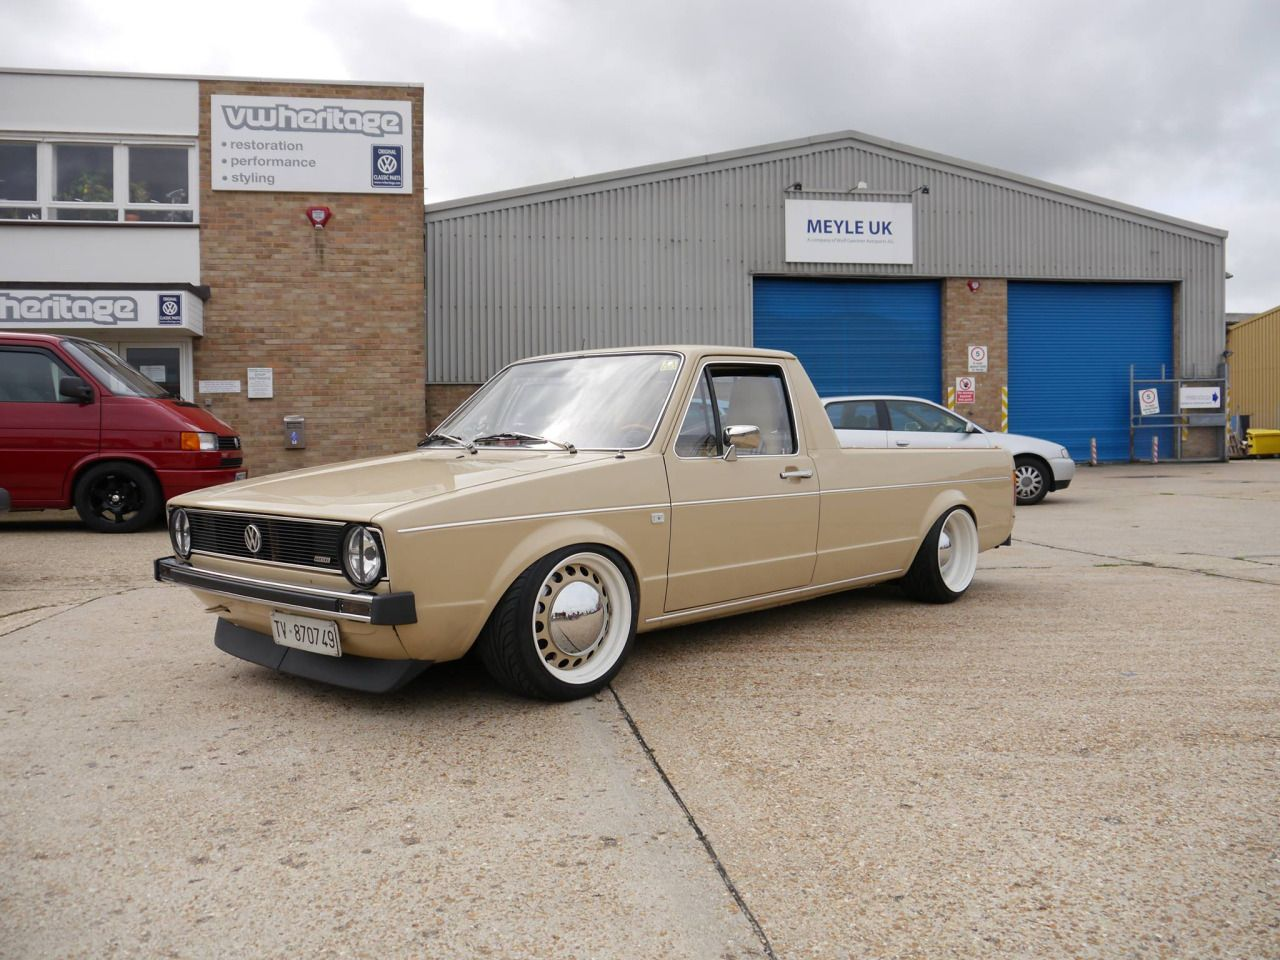 Sweet Vw Pick Up With Images Vw Cady Mk1 Caddy Old School Cars